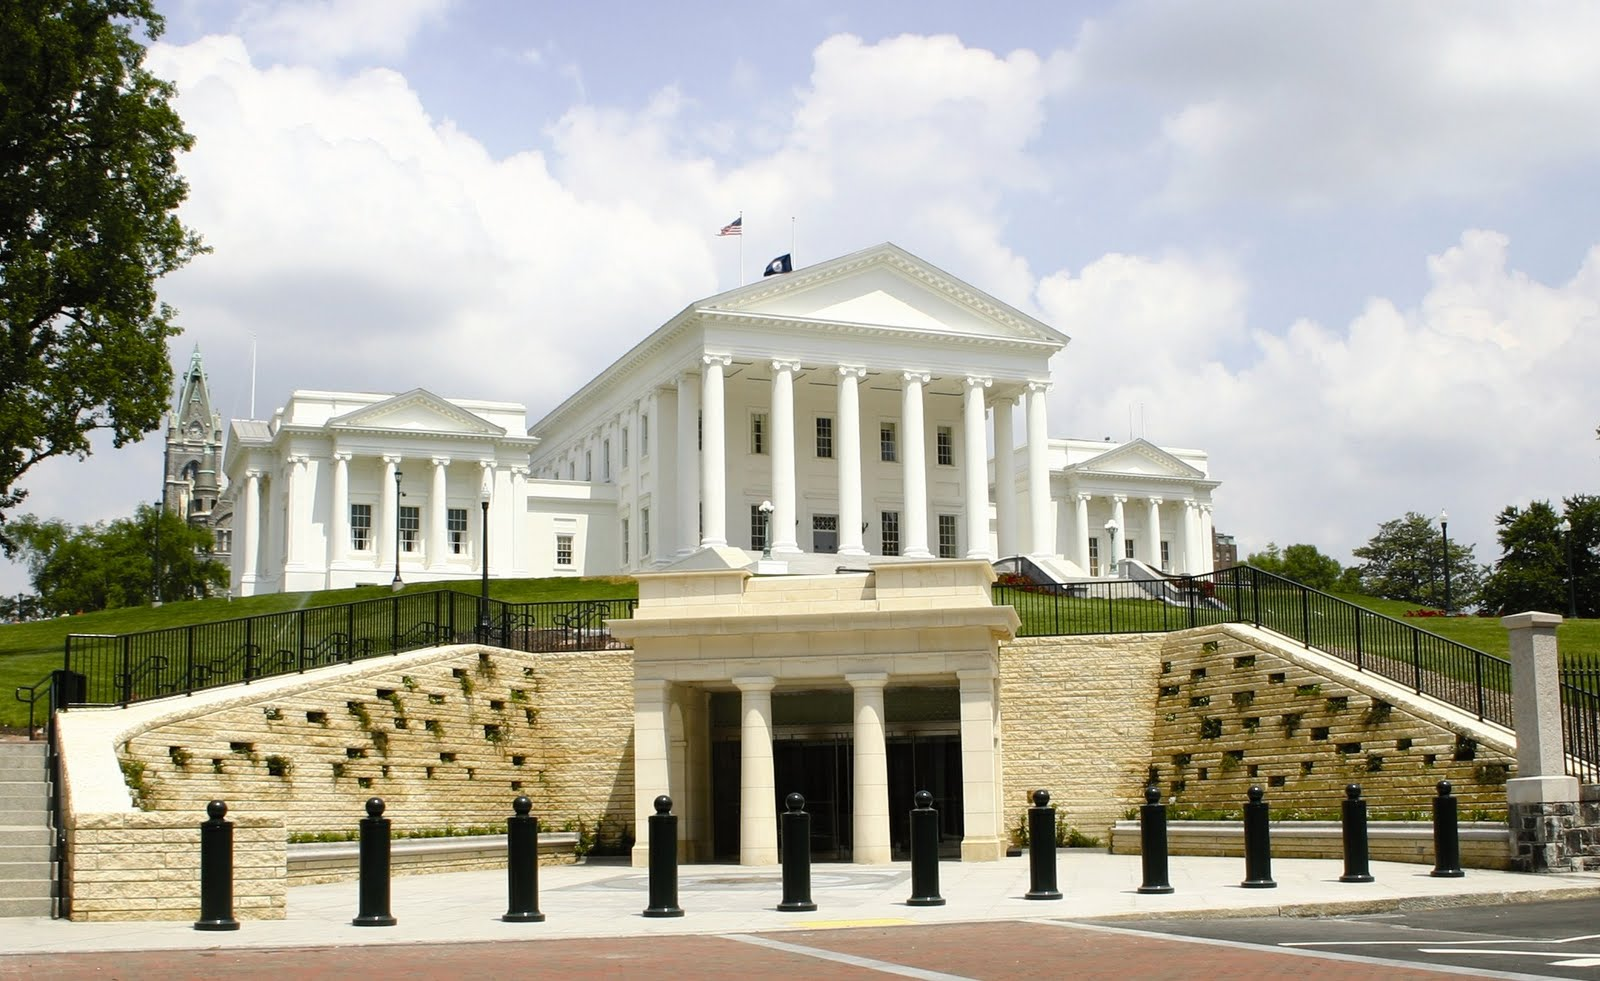 Overview Of The Virginia State Capitol Building